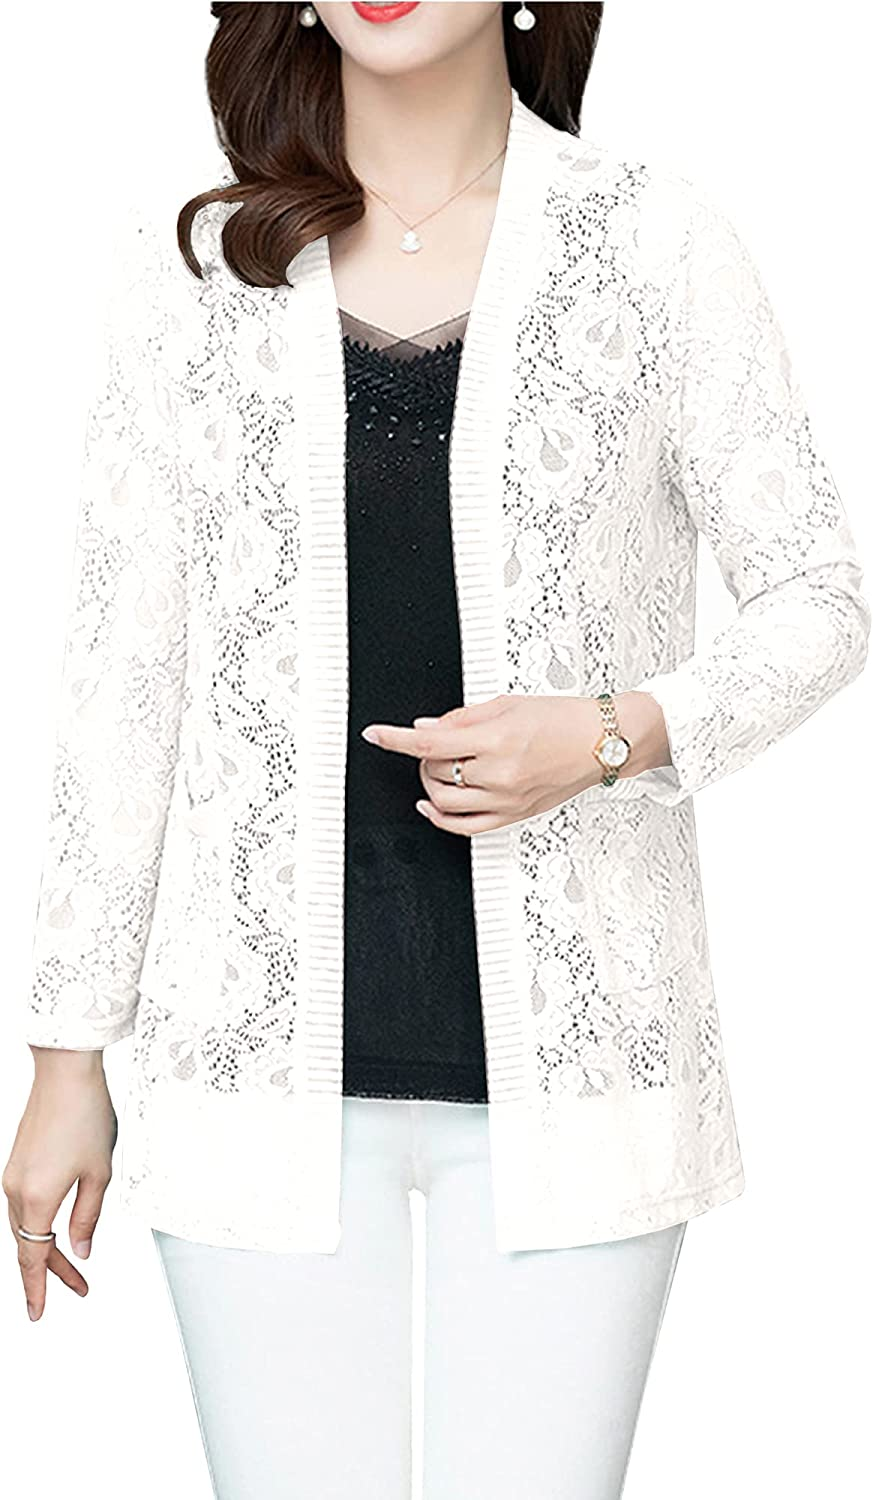 Hixiaohe Women's Long Sleeve Lace Cardigan Mid Long Open Front Shrug Cover Up w Pockets